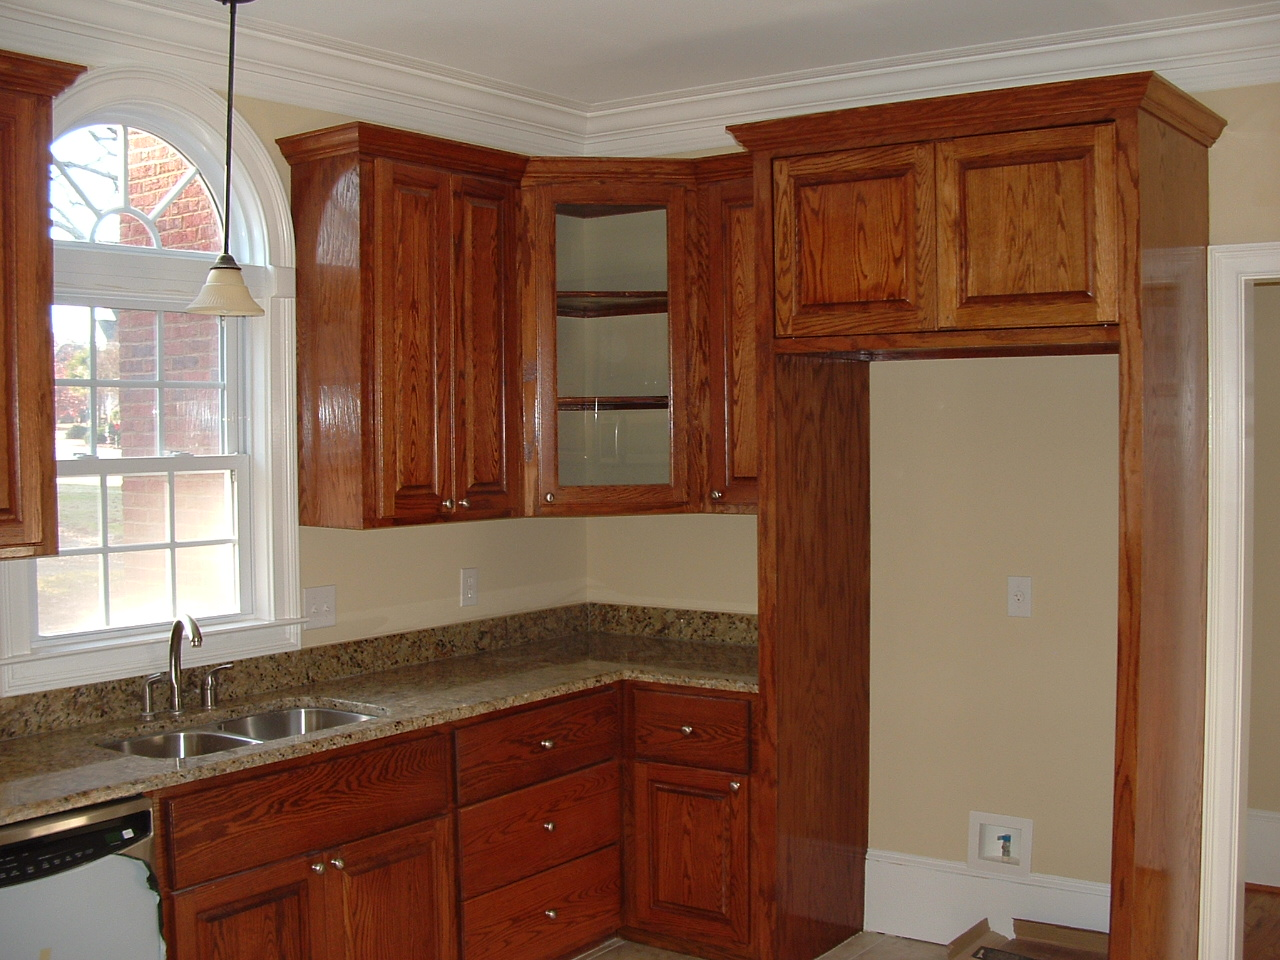 Kitchen free standing cabinets photo - 2